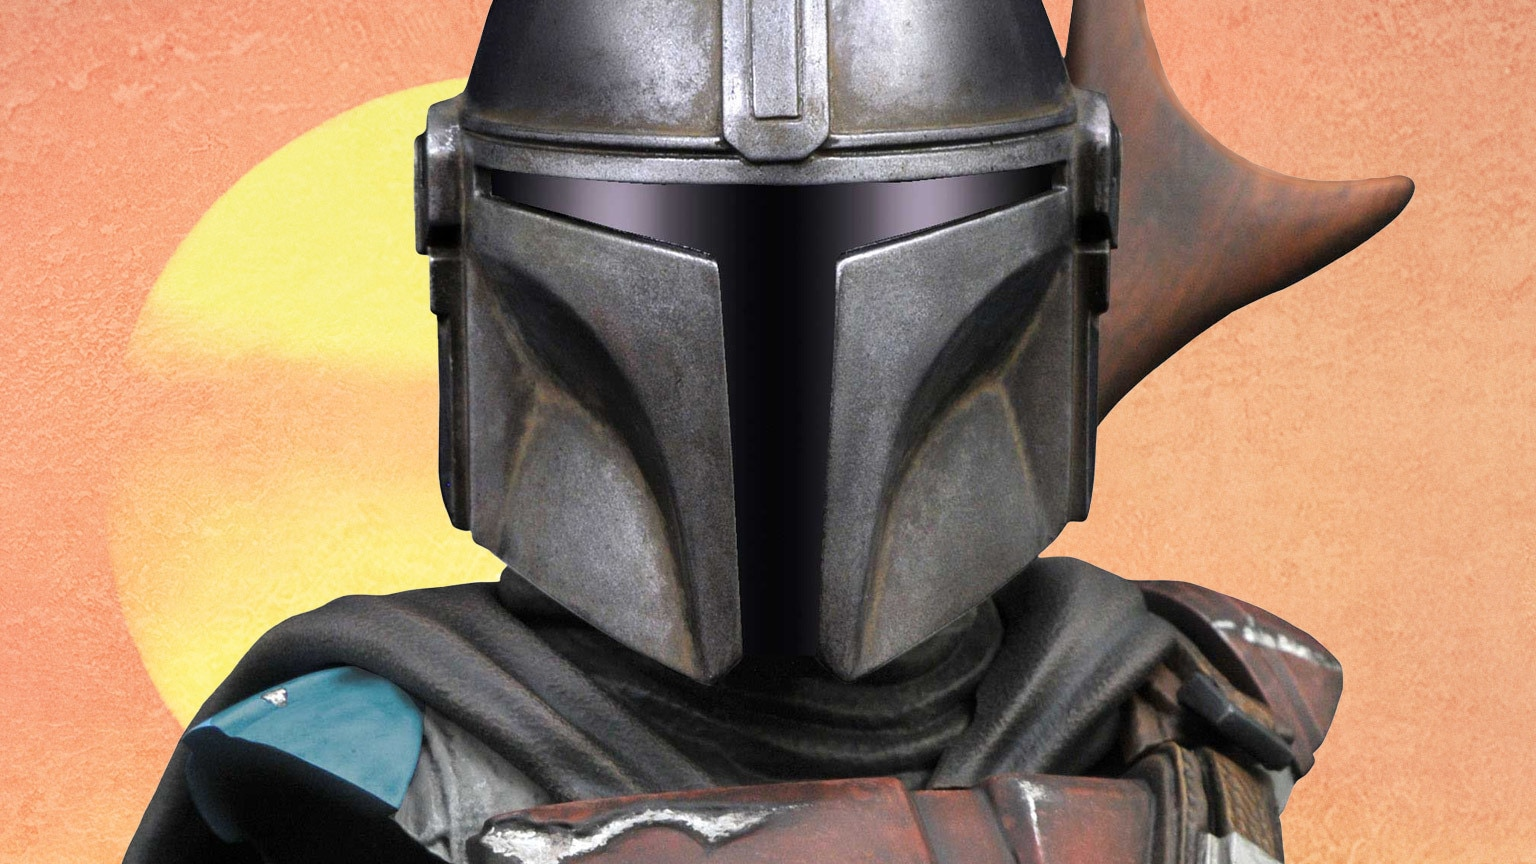 The Mandalorian and Kylo Ren Become 'Legends in 3D' Thanks to Gentle Giant Ltd.